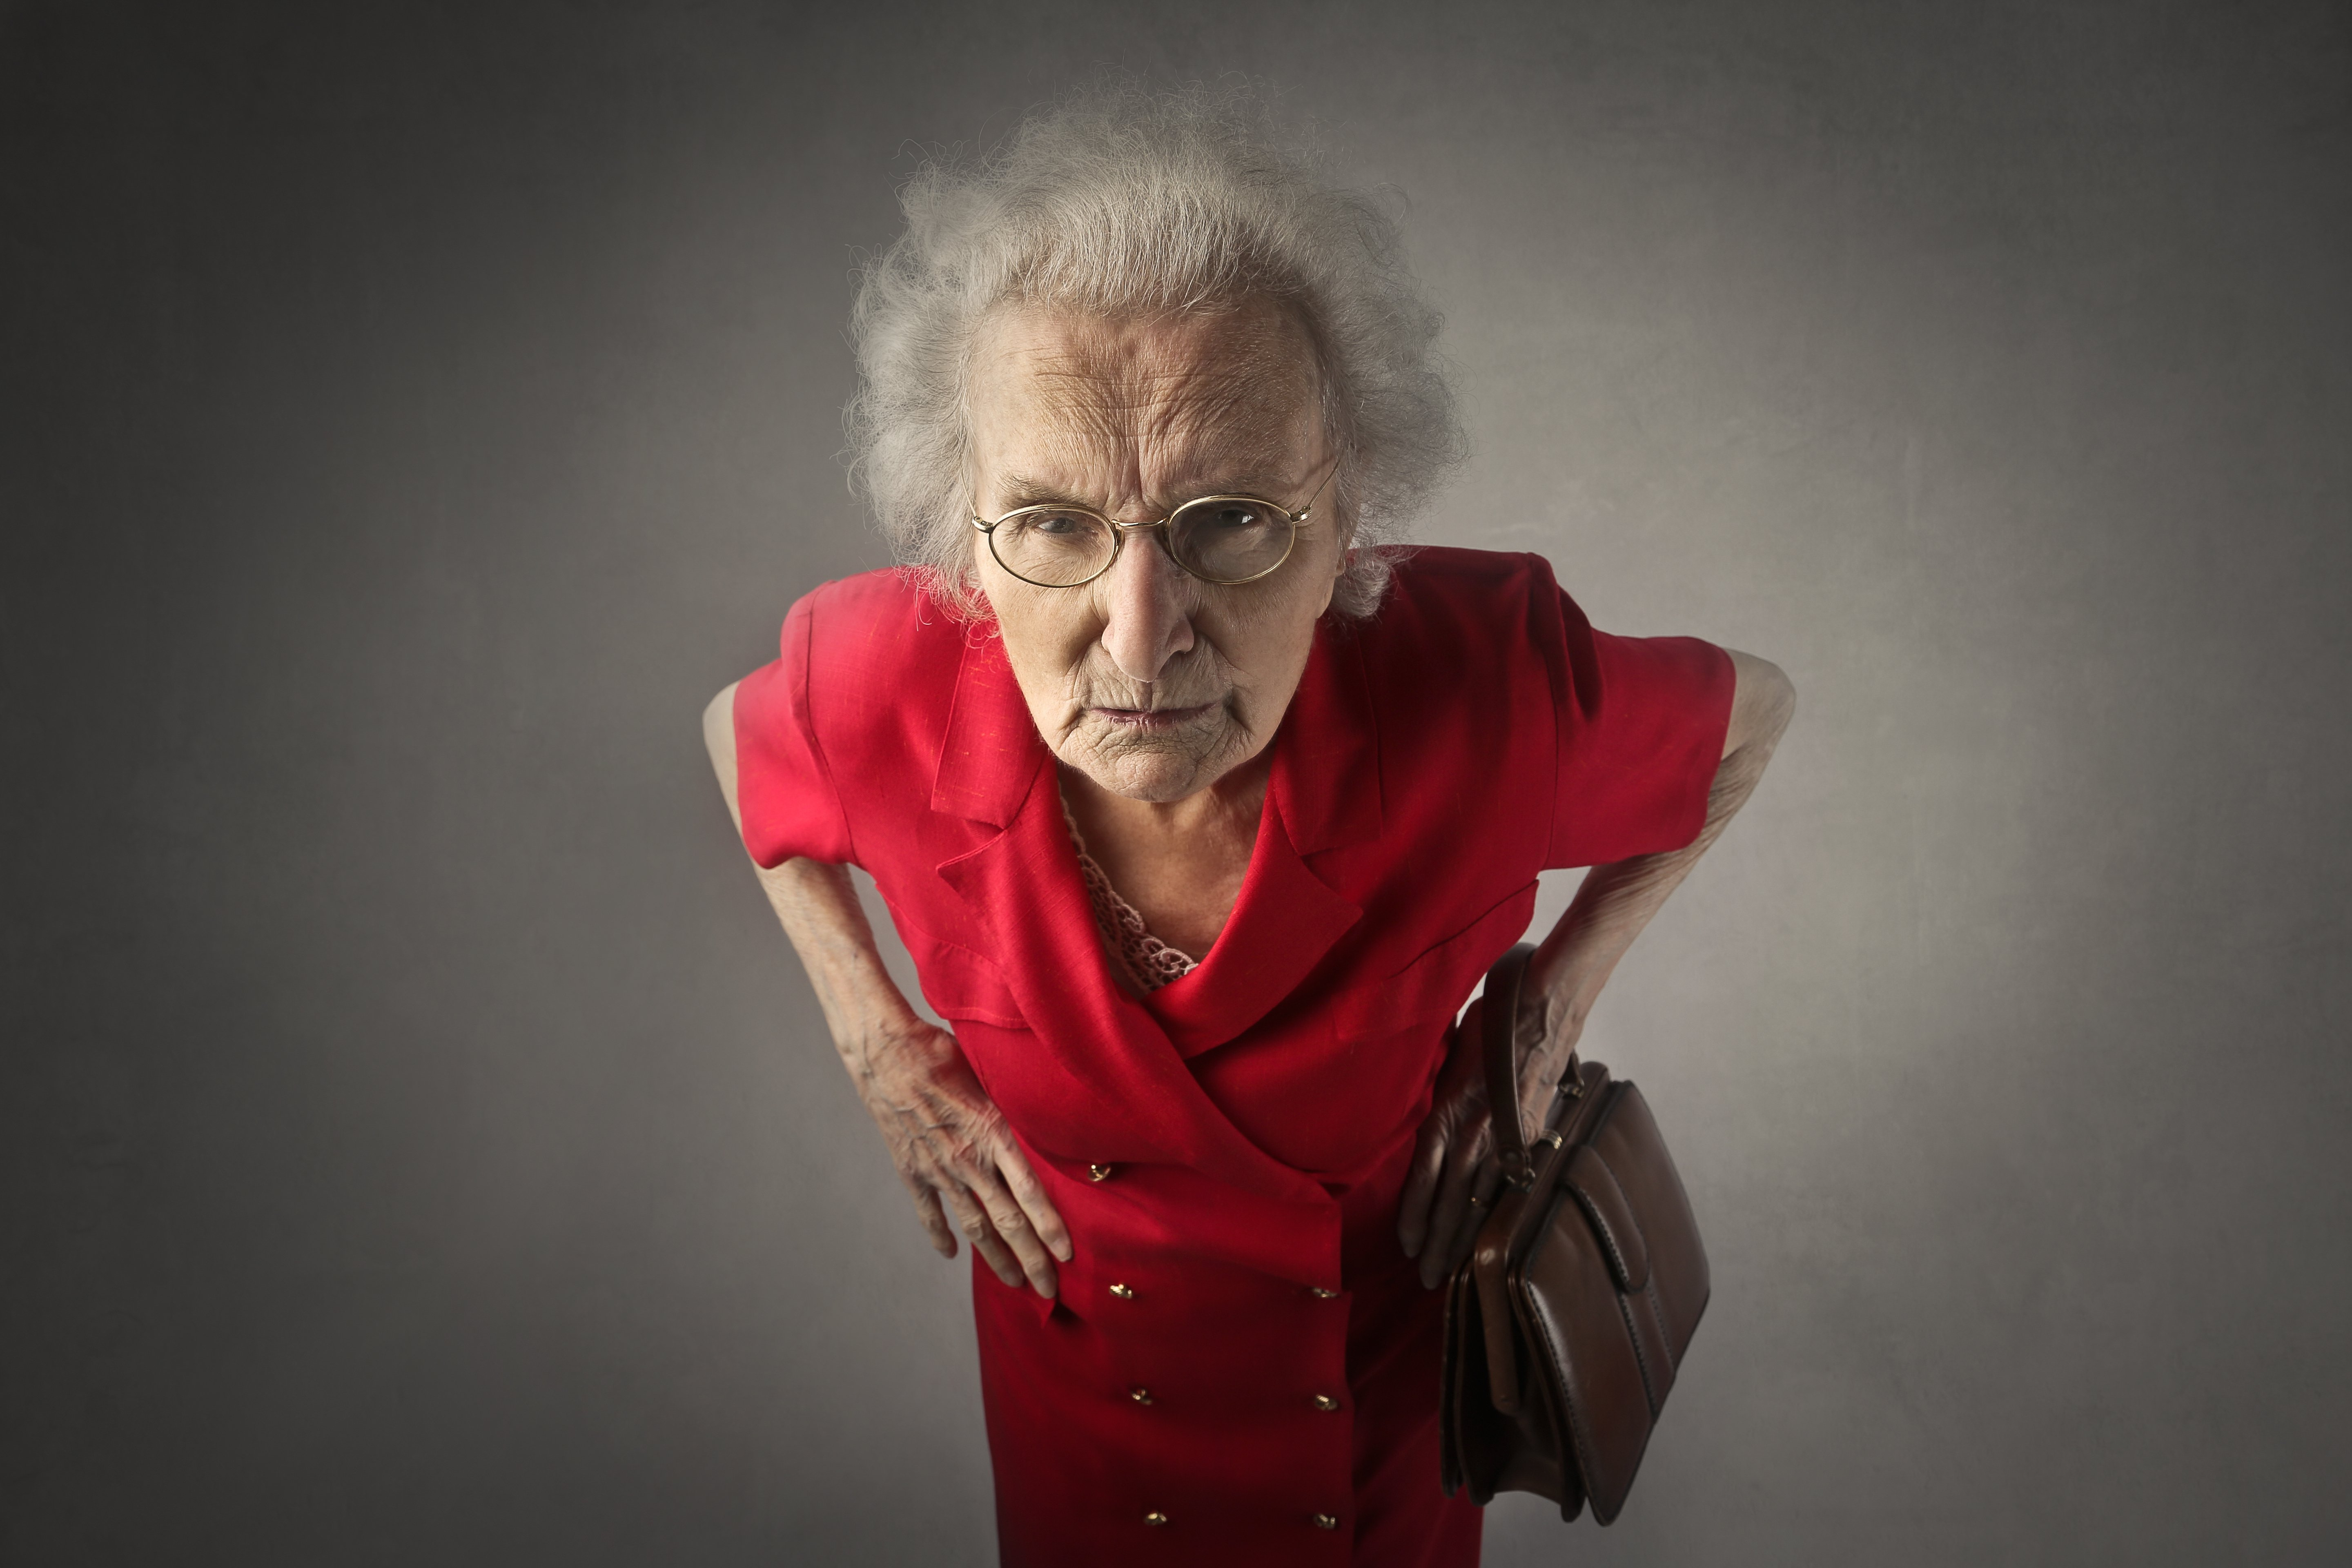 An angry lady dressed in red.   Source: Shutterstock.